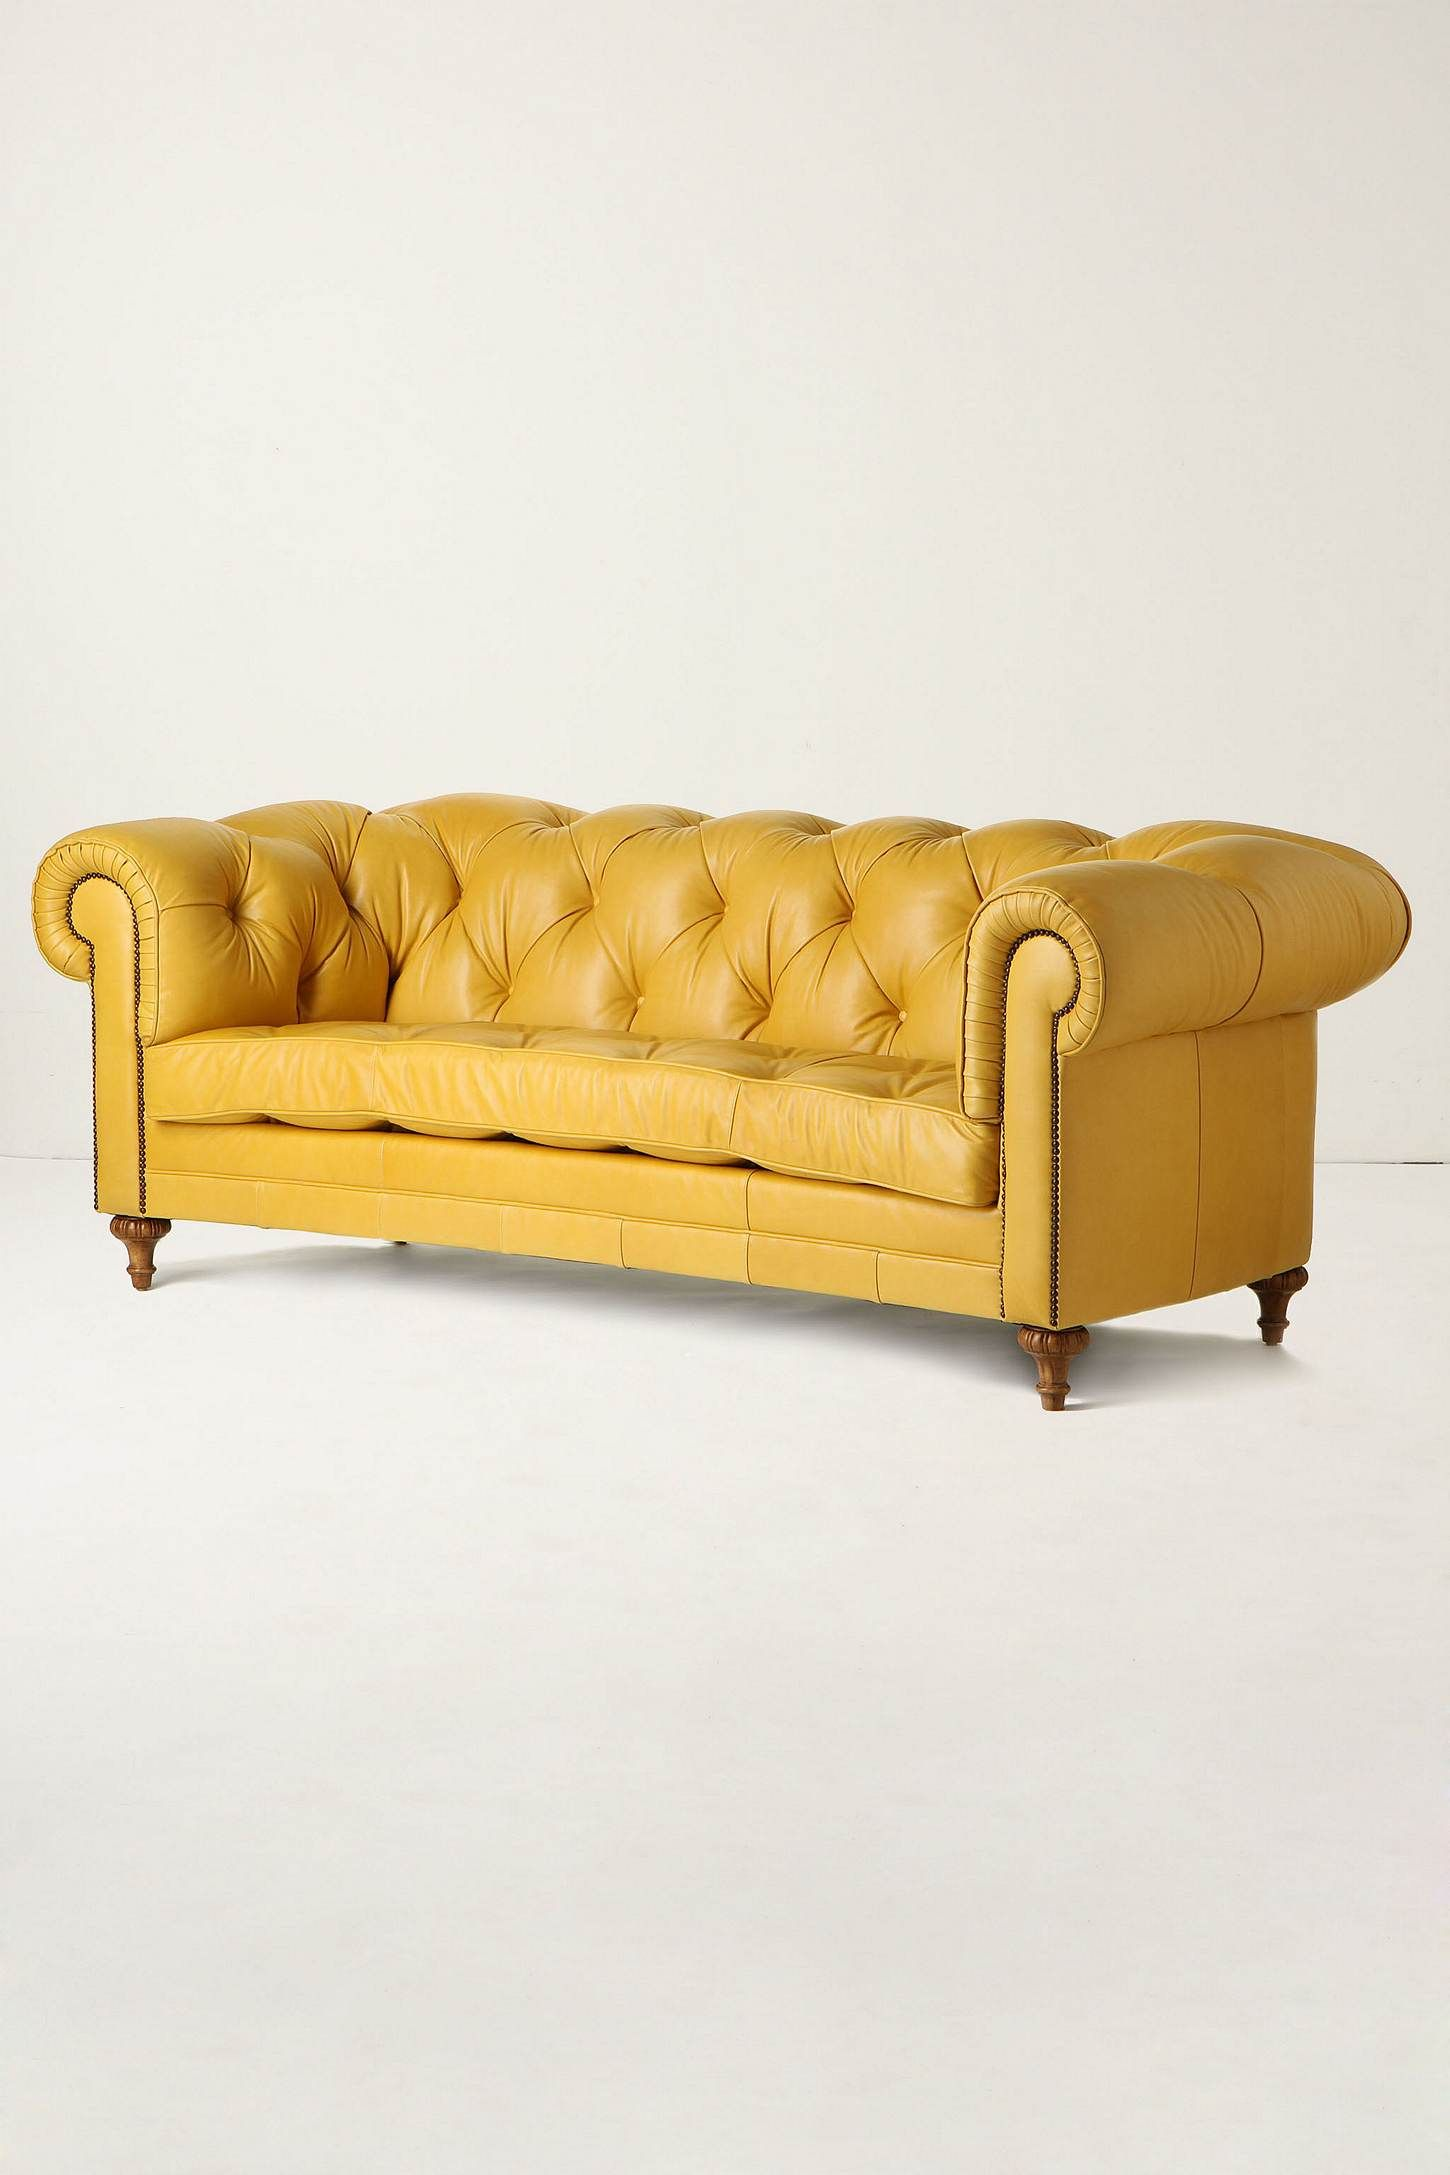 tufted yellow chair rocking slipcovers mustard will never get old for me furniture